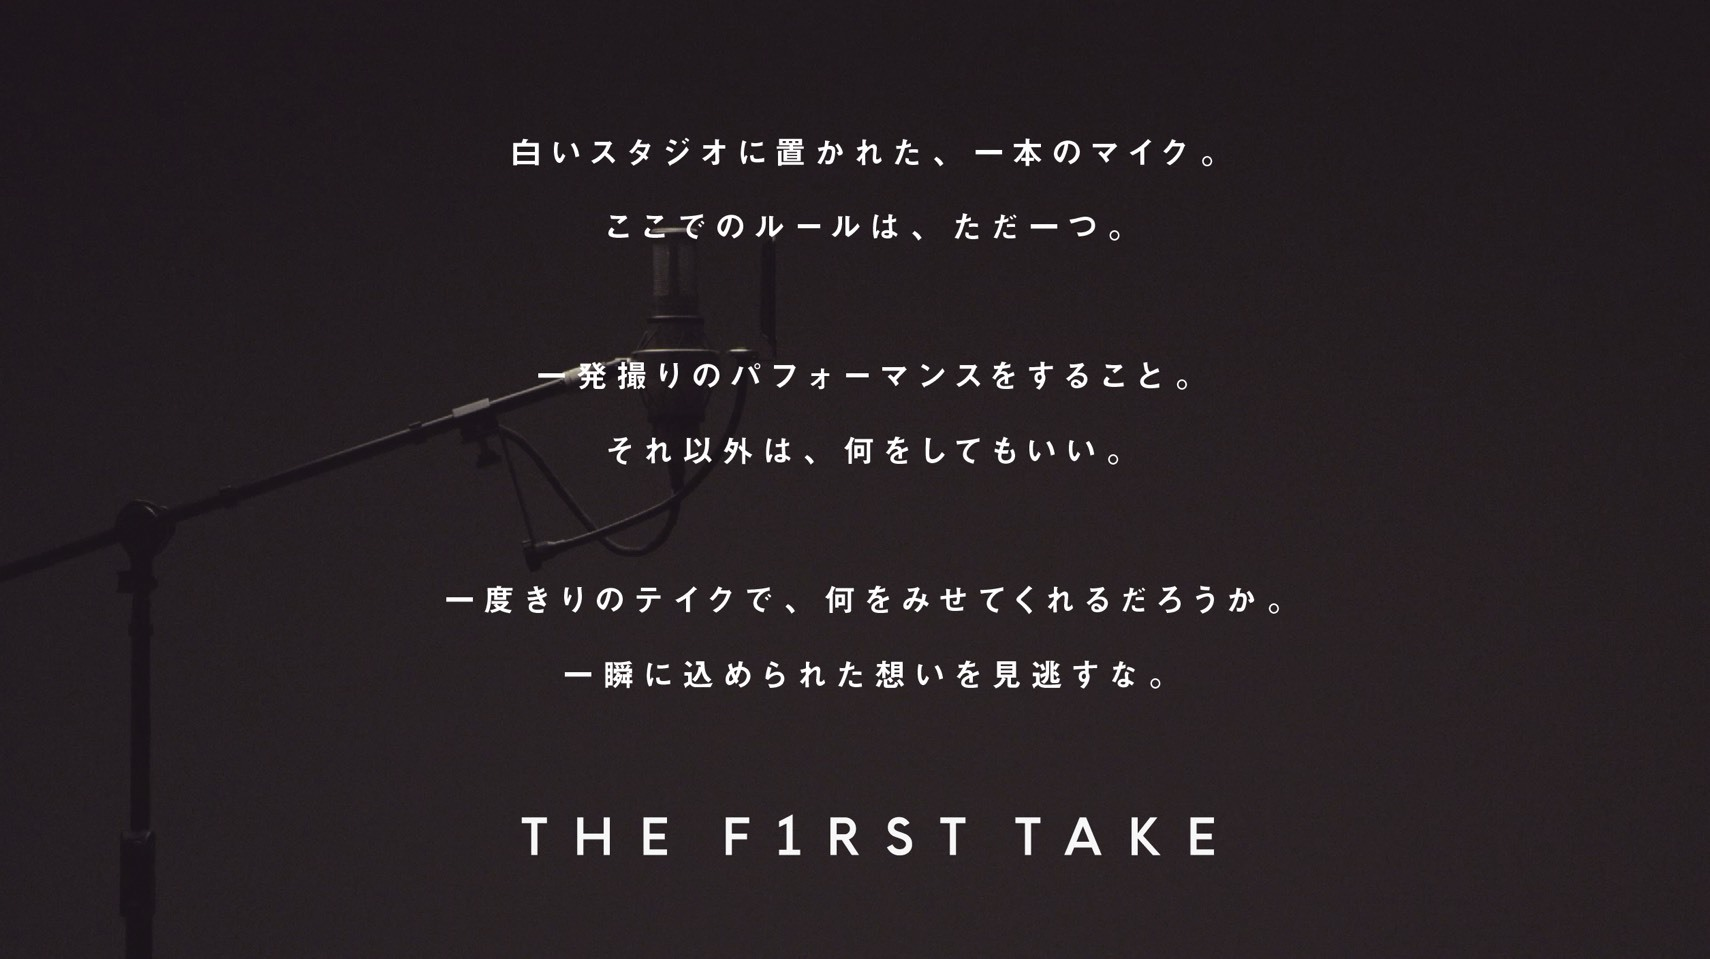 「THE FIRST TAKE」ステートメント